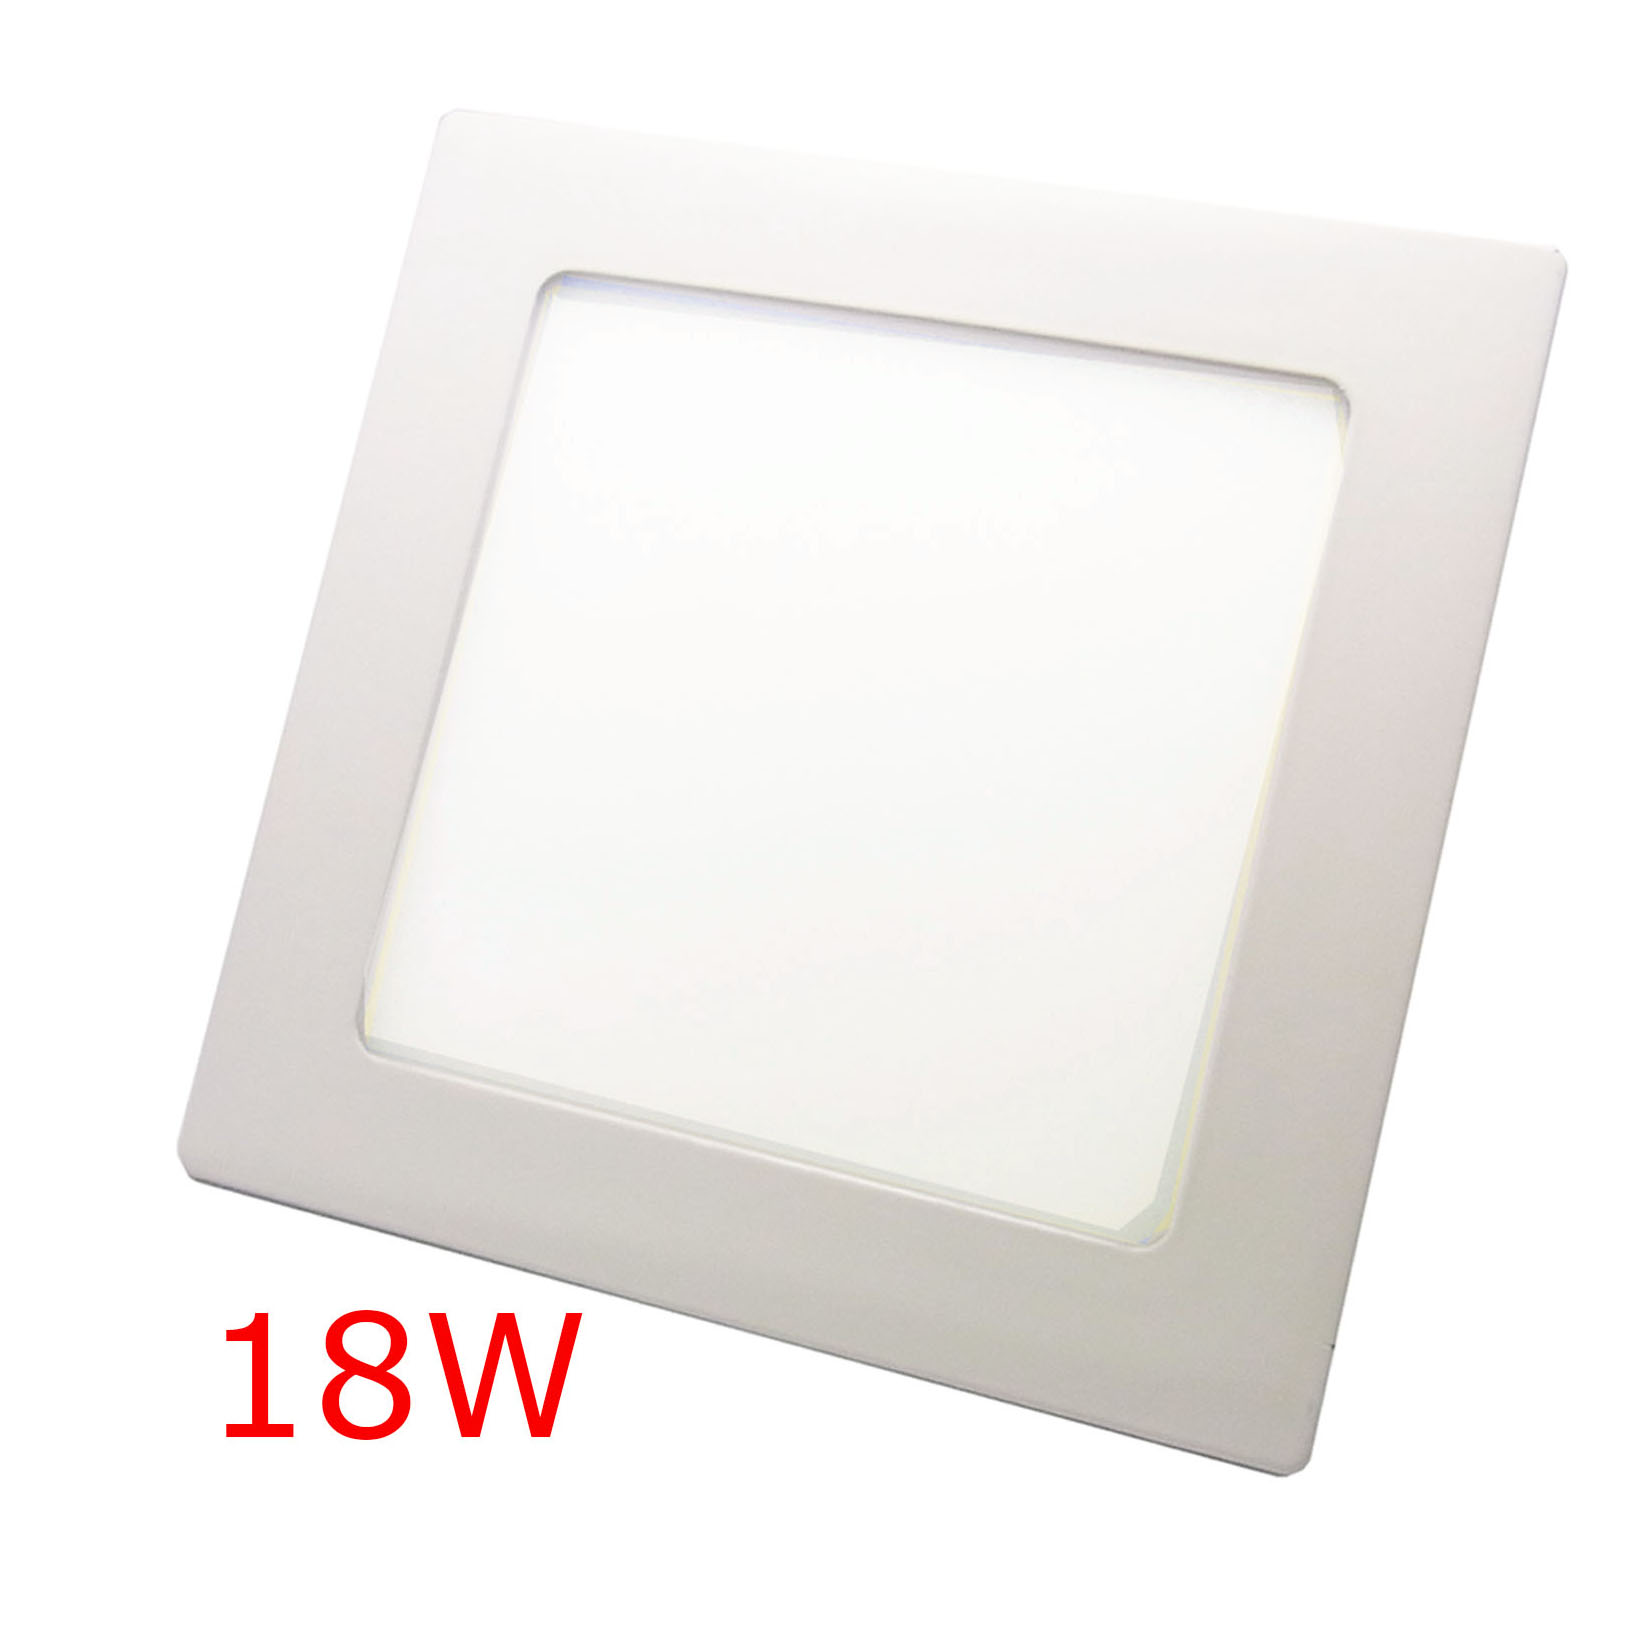 2x18w quadrat led panel einbaustrahler ultraslim lampe decken leucht white wei ebay. Black Bedroom Furniture Sets. Home Design Ideas